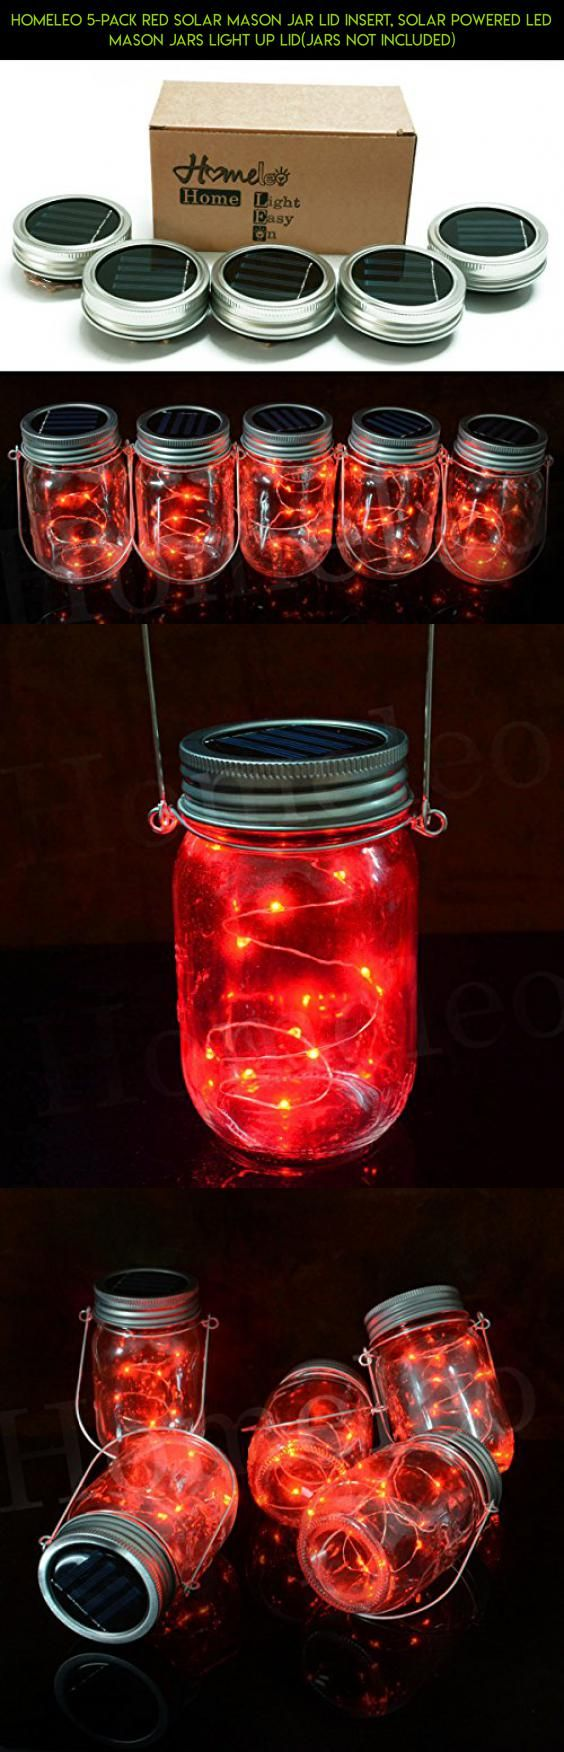 Solar Jars Best 25 Solar Mason Jars Ideas On Pinterest Mason Jar Solar